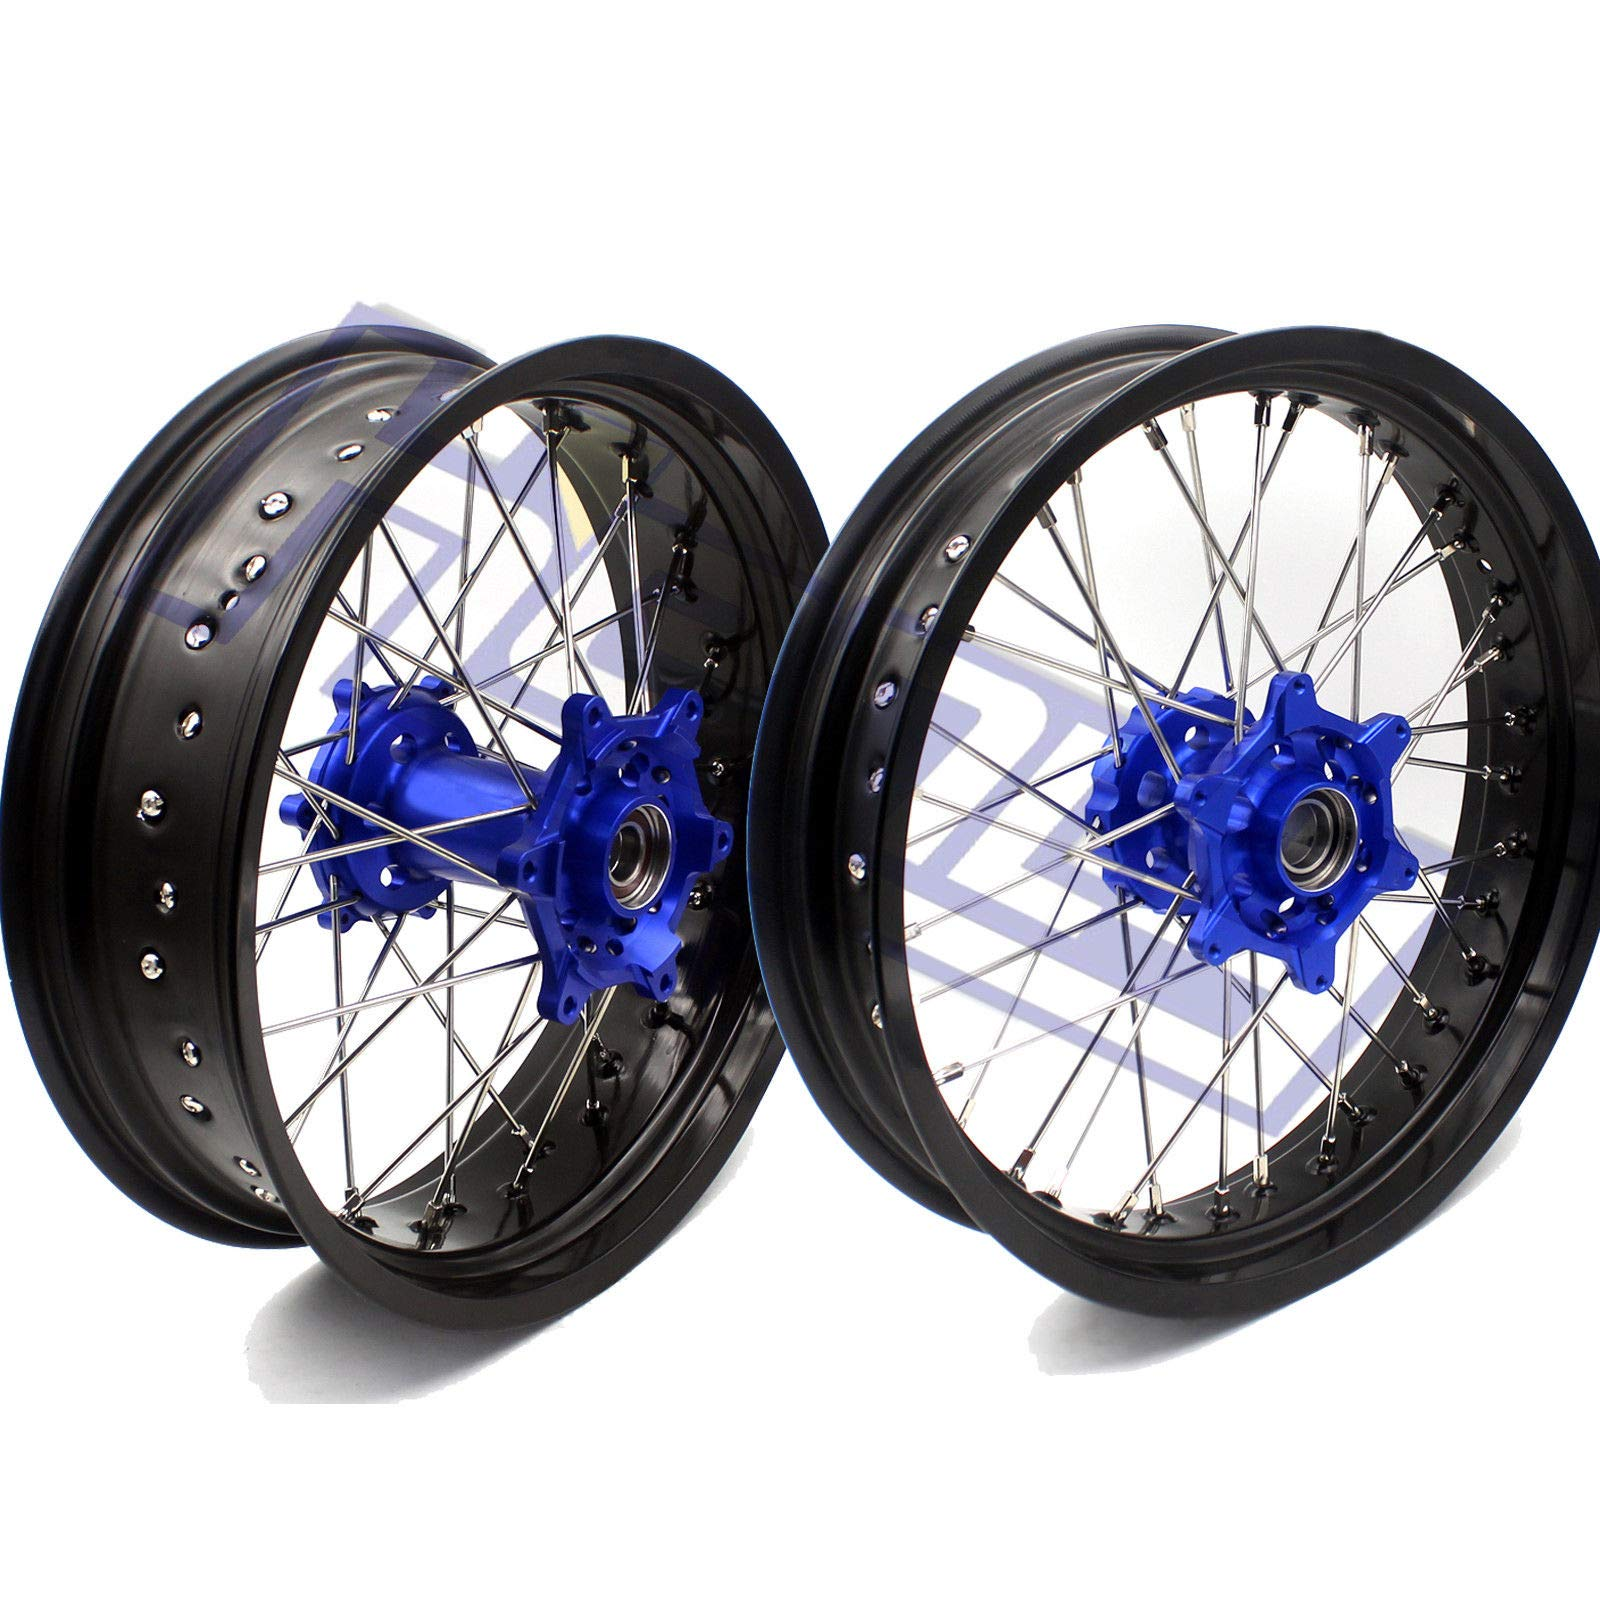 FidgetFidget 3.5/4.25 Wheels Set for KTM SXF EXCR XCF XCW 125-530 250 350 2003-2018